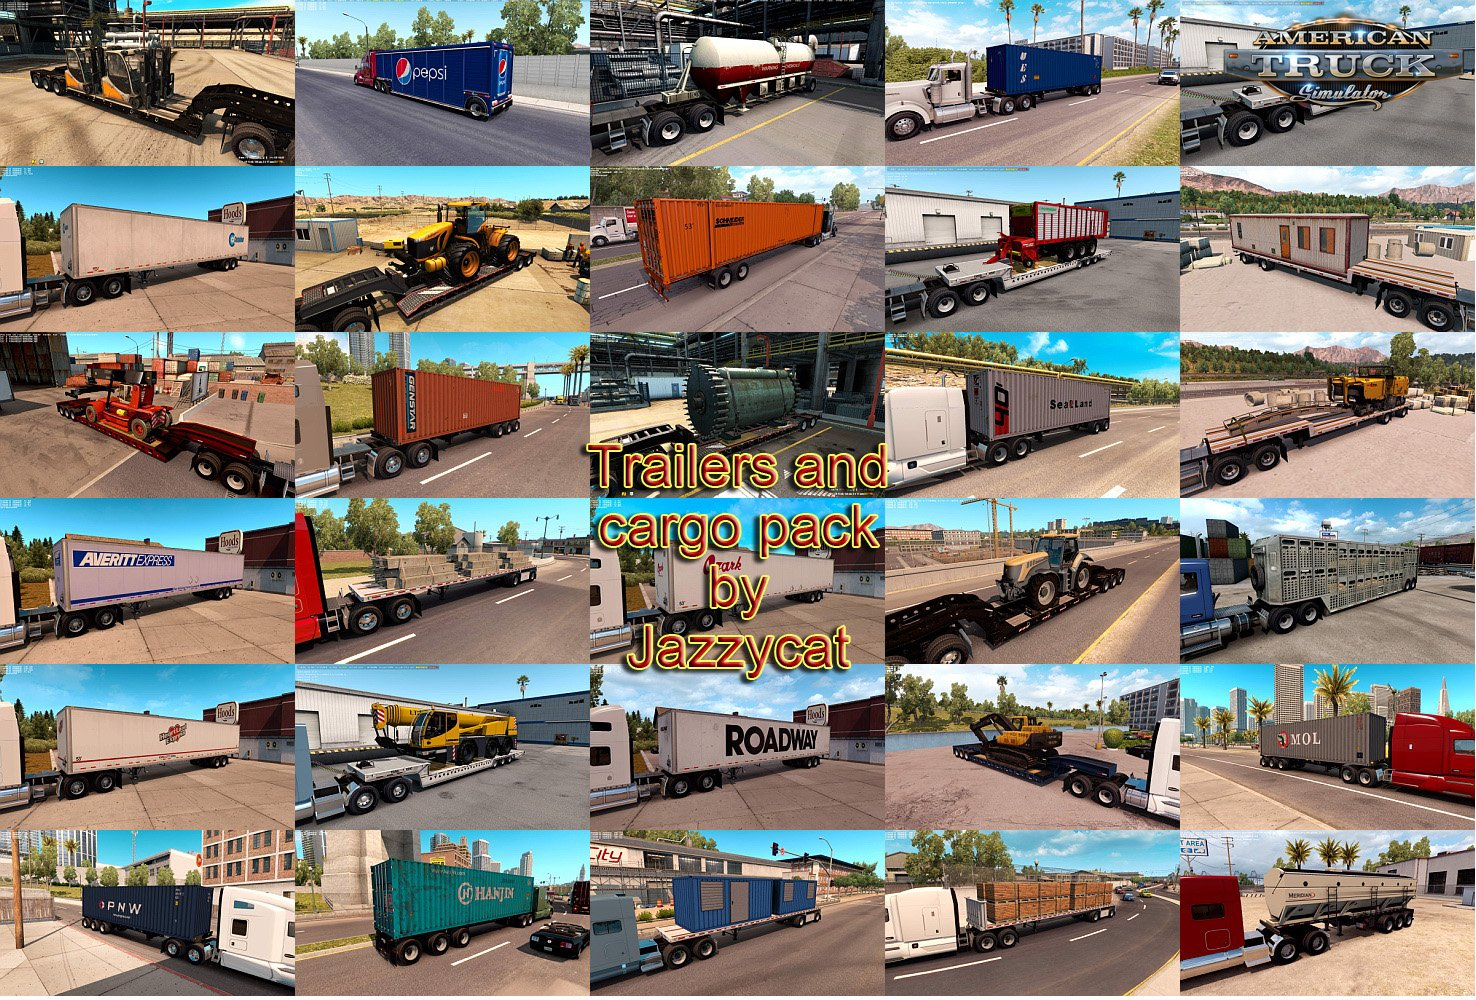 Trailers and Cargo Pack v2.2.1 for Ats by Jazzycat